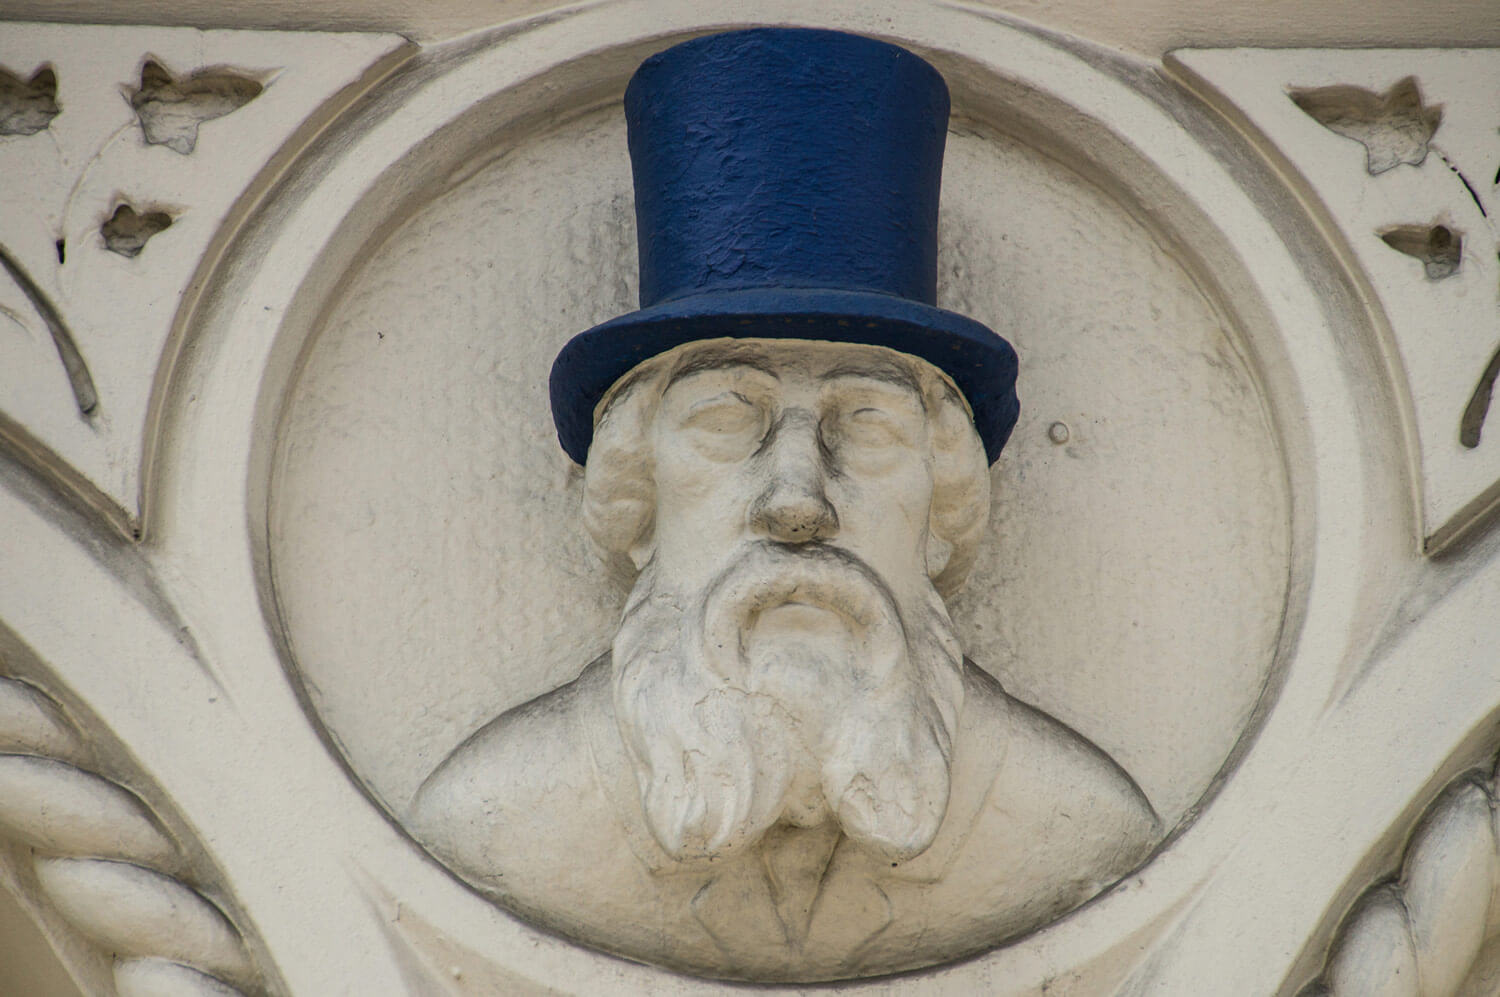 Tanky Smith in his top hat - By John Brown